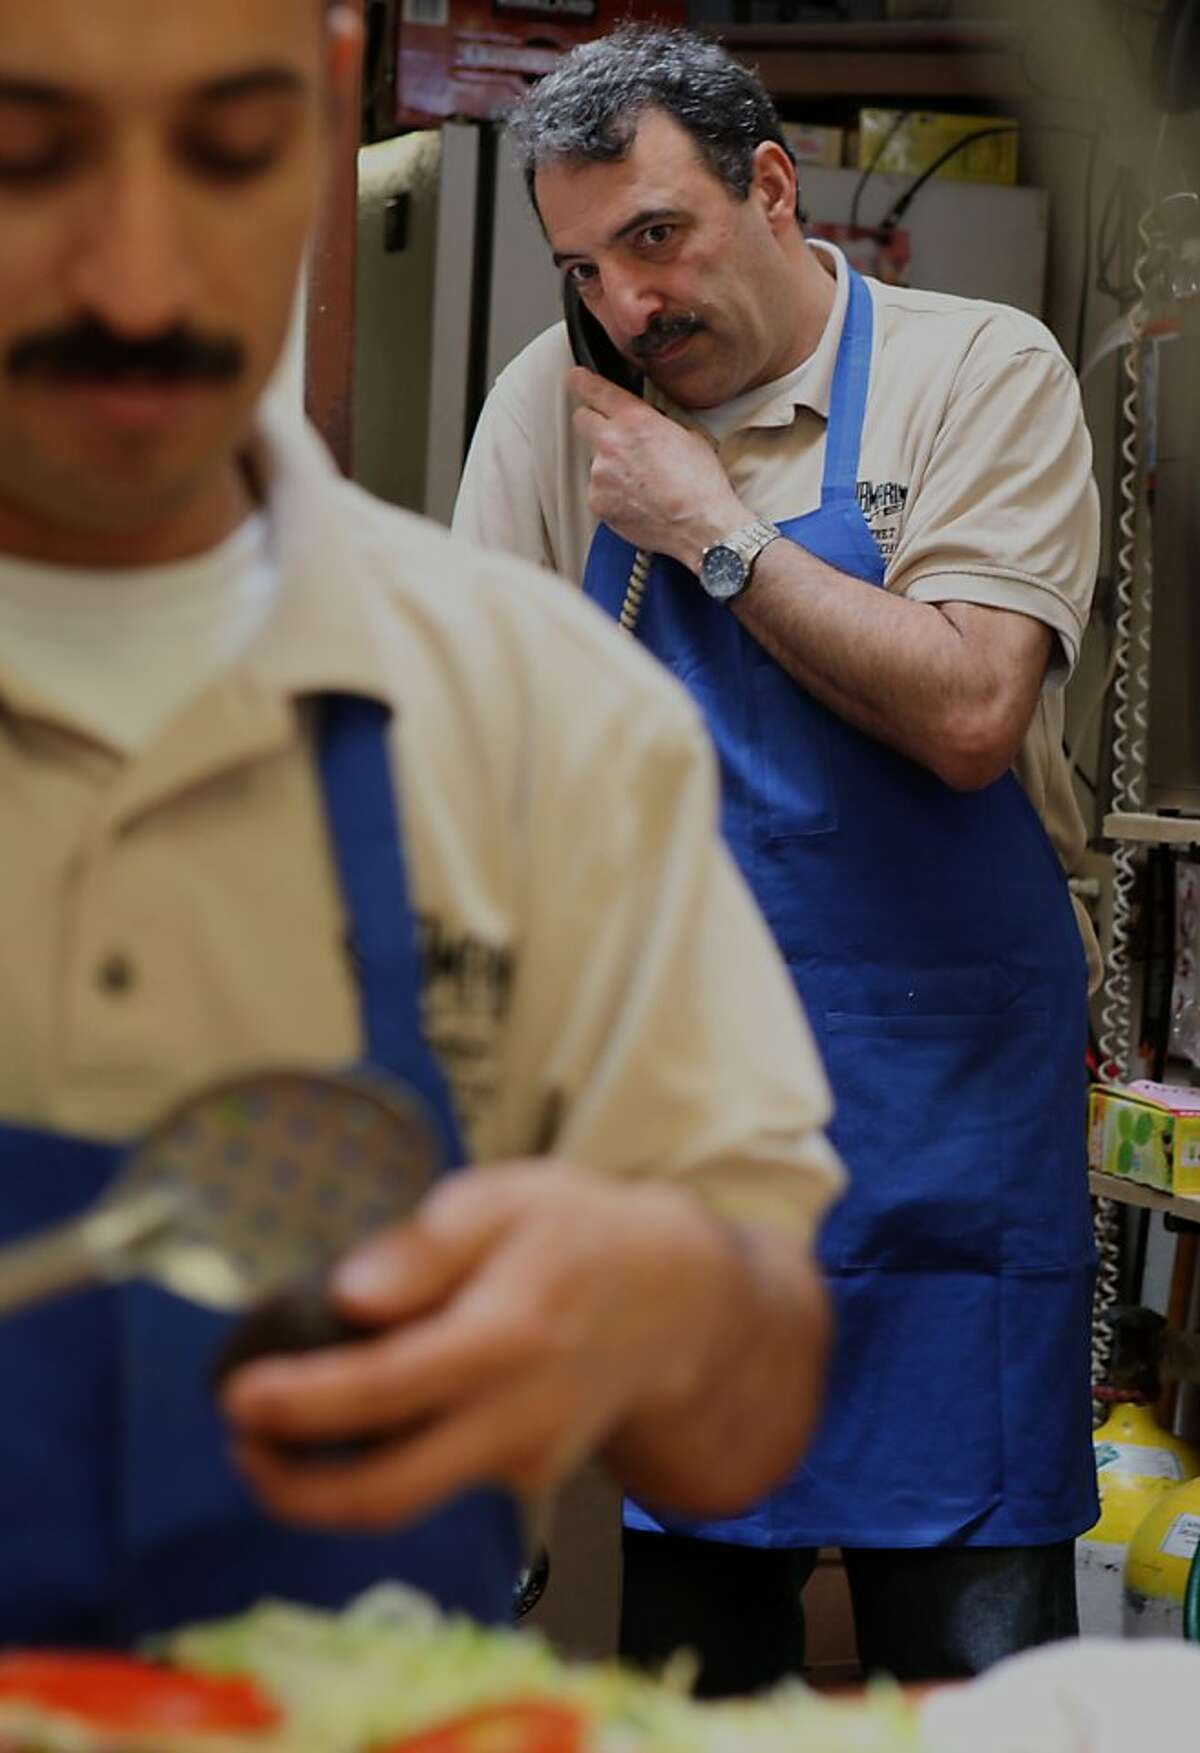 Adrian Hernandes (left) making a sandwich as longtime manager Rafik Zadoorian (right) takes a phone call at the Submarine Center in San Francisco, Calif., on Wednesday, April 11, 2012.